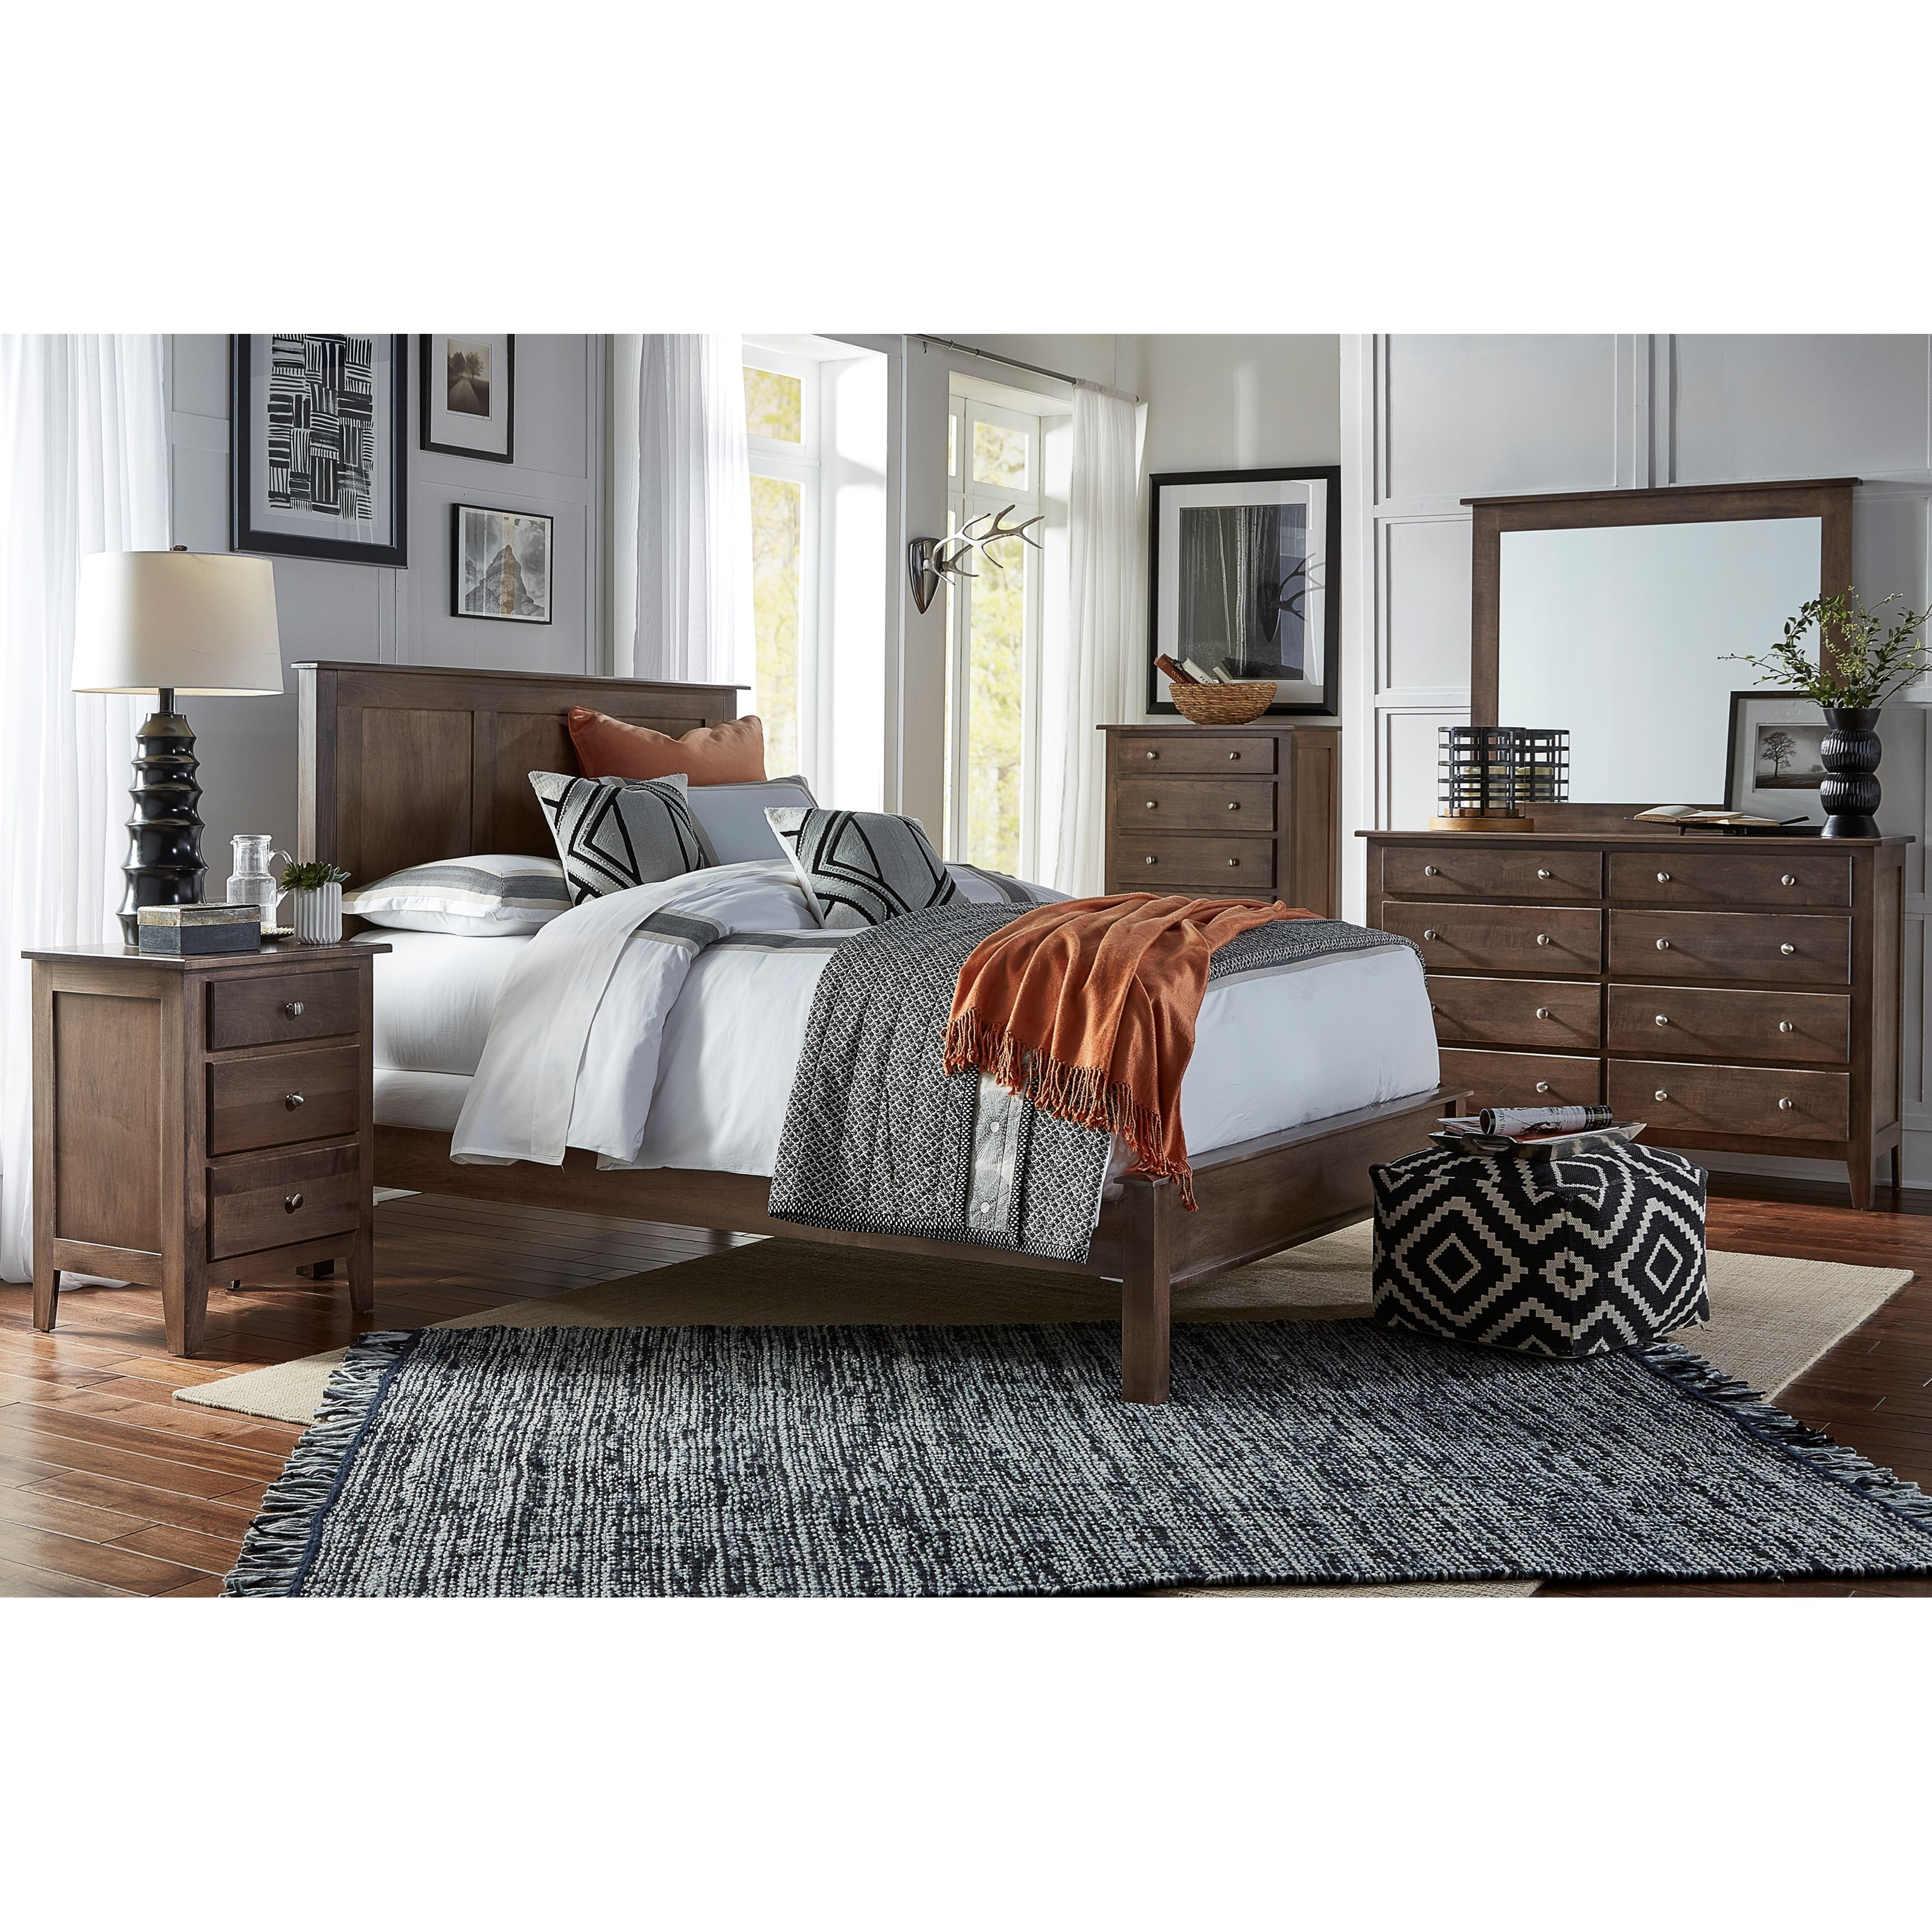 Mapleton California King Bedroom Group by Daniel's Amish at Saugerties Furniture Mart